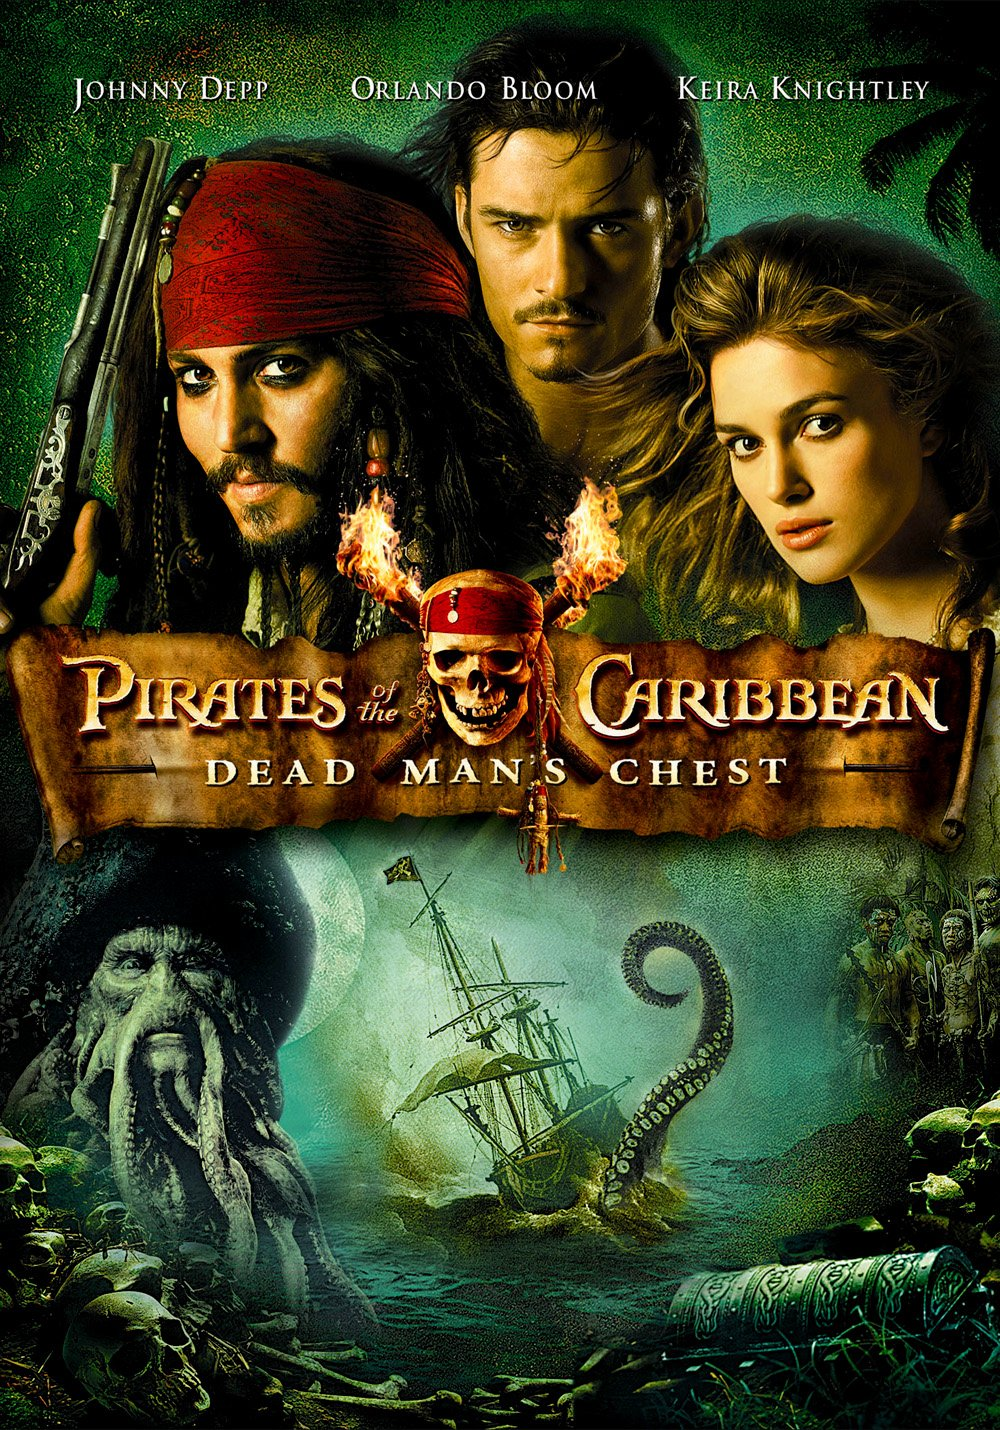 pirates of the caribbean 1 full movie in english 720p download